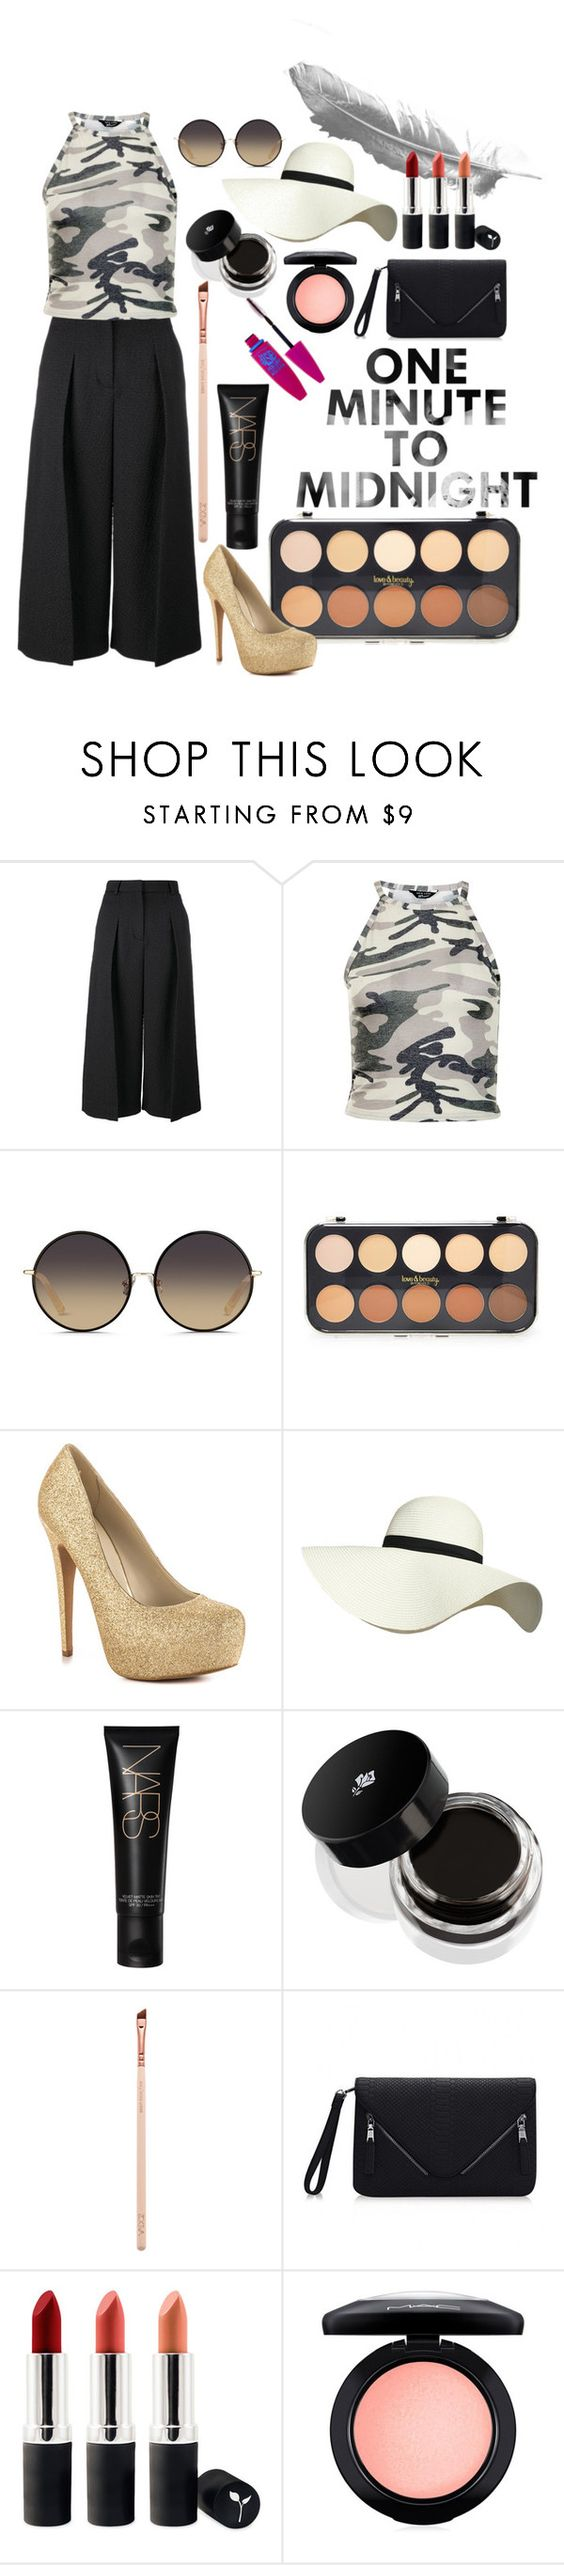 """camonochrome"" by bilqis-safira-bela-ii ❤ liked on Polyvore featuring Erdem, New Look, Matthew Williamson, Forever 21, ALDO, Pilot, Lancôme, Terre Mère, MAC Cosmetics and Maybelline"